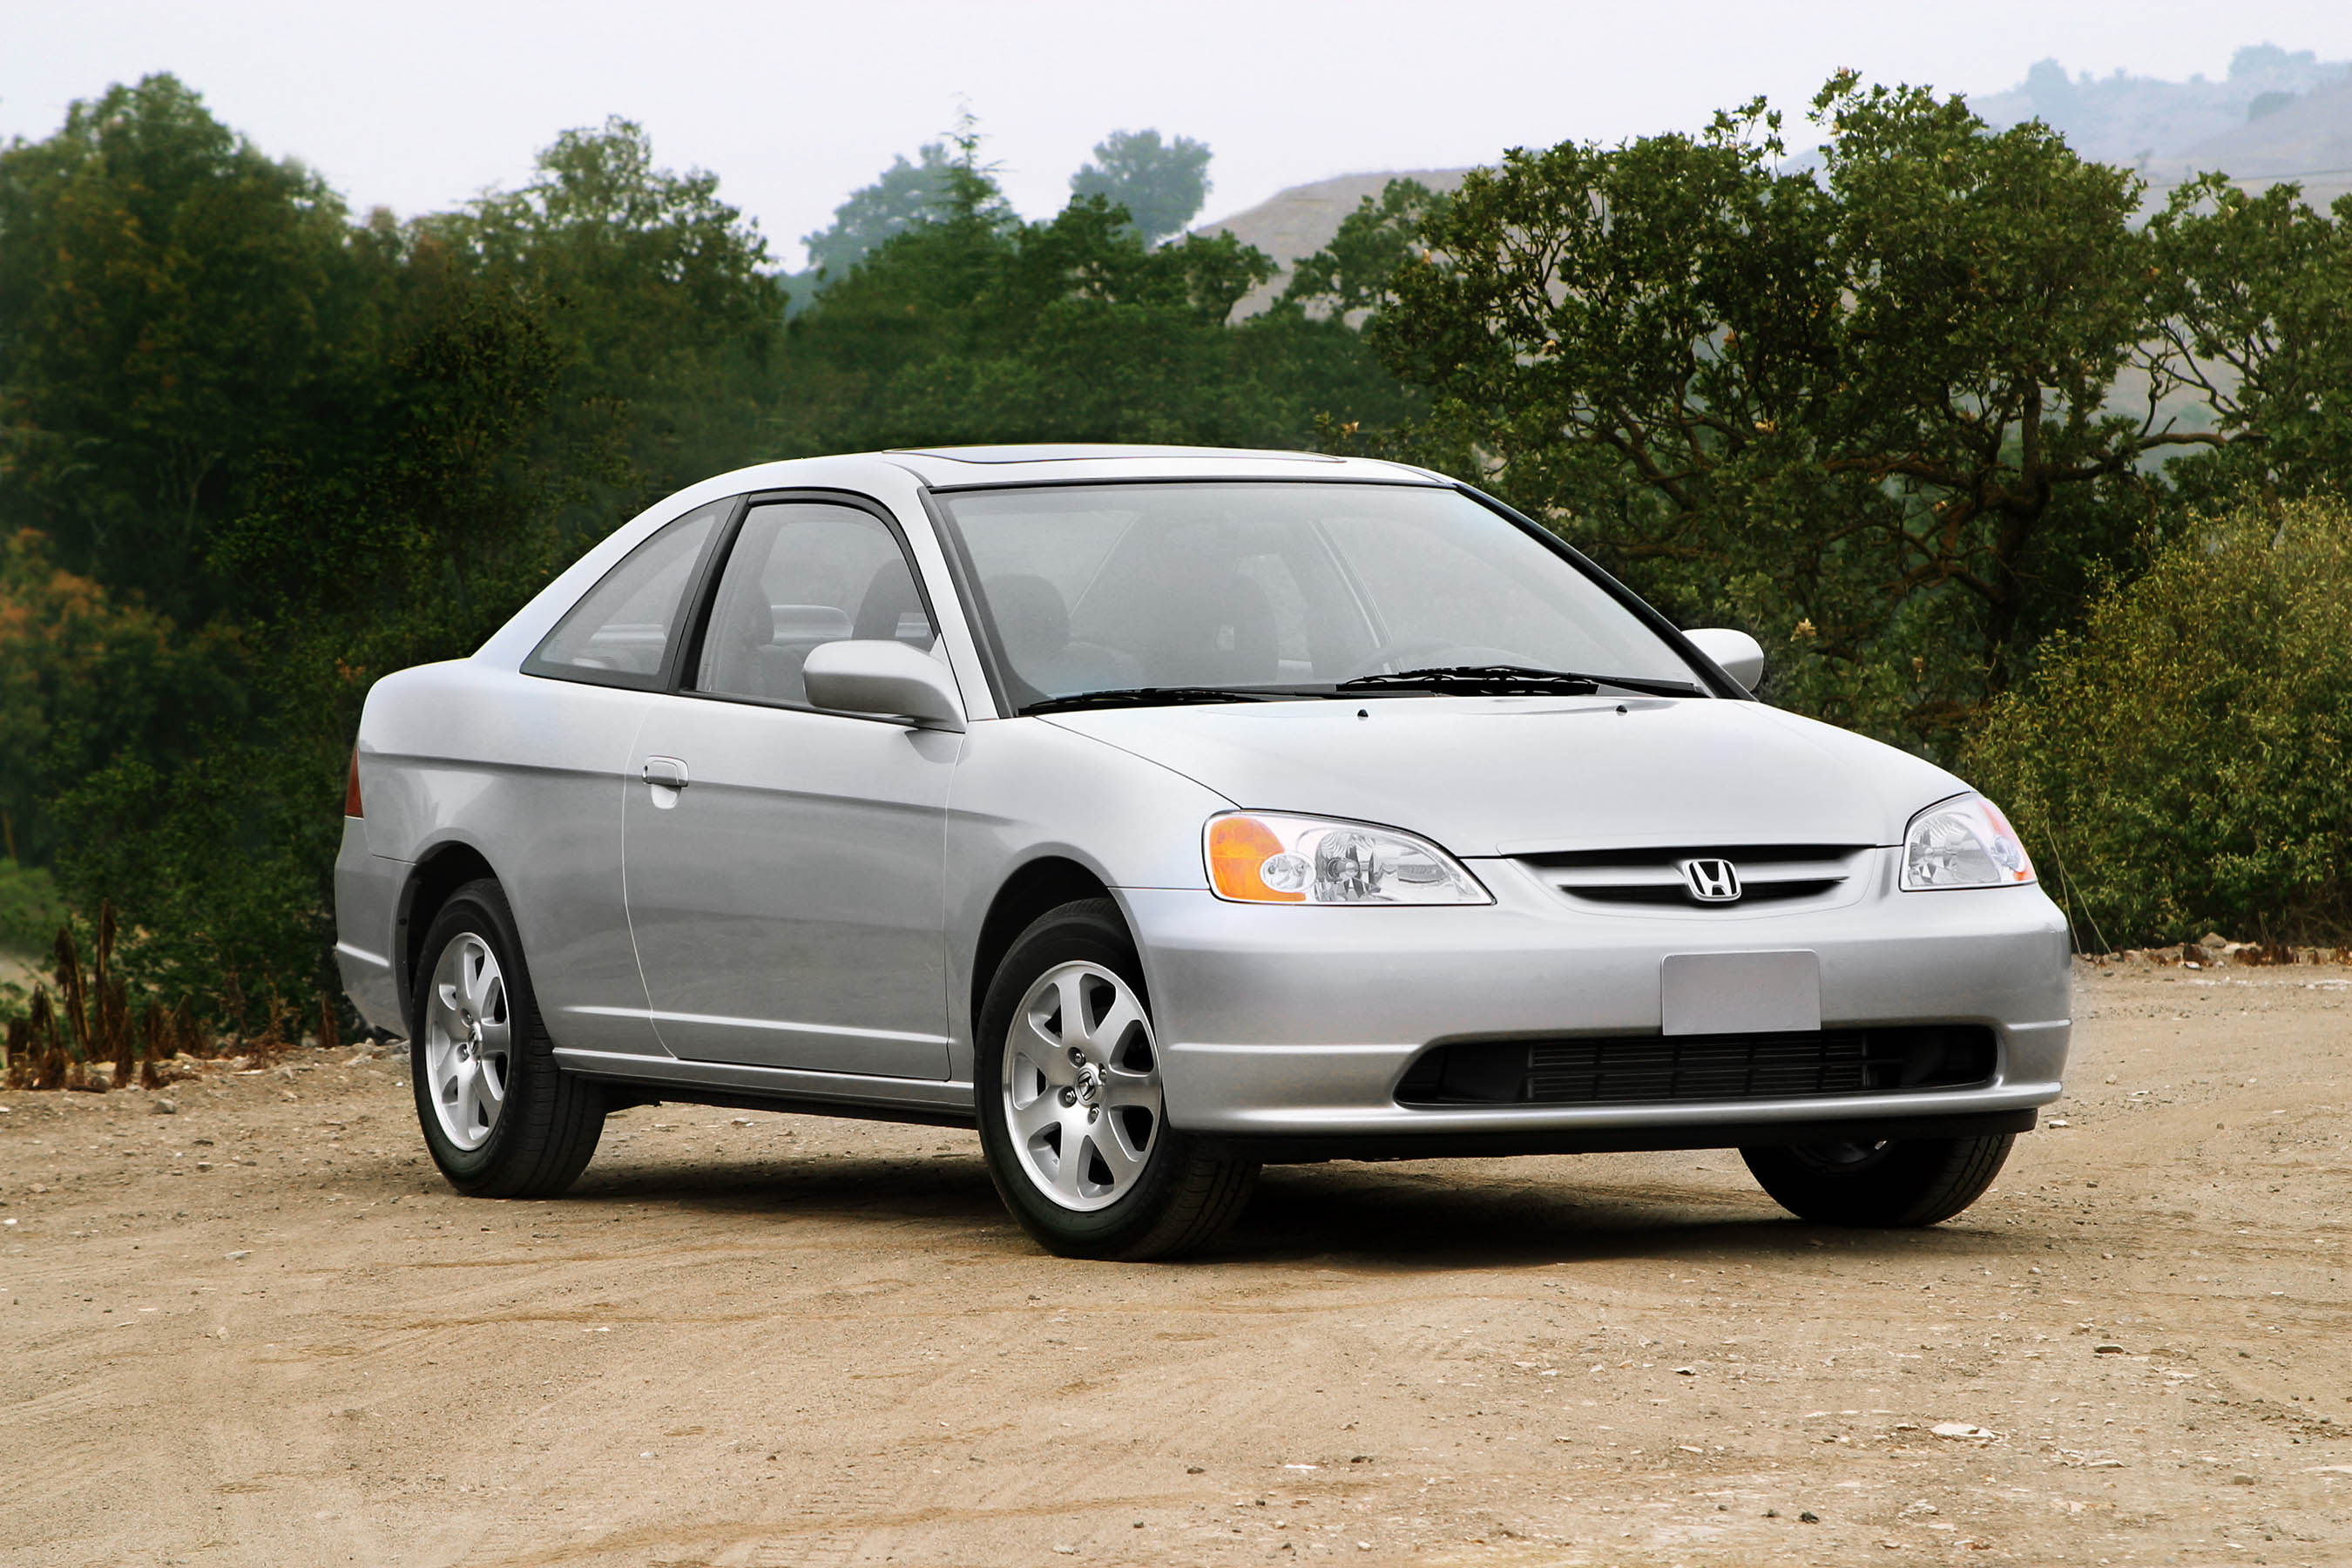 honda adds more cars to faulty airbags autos post. Black Bedroom Furniture Sets. Home Design Ideas